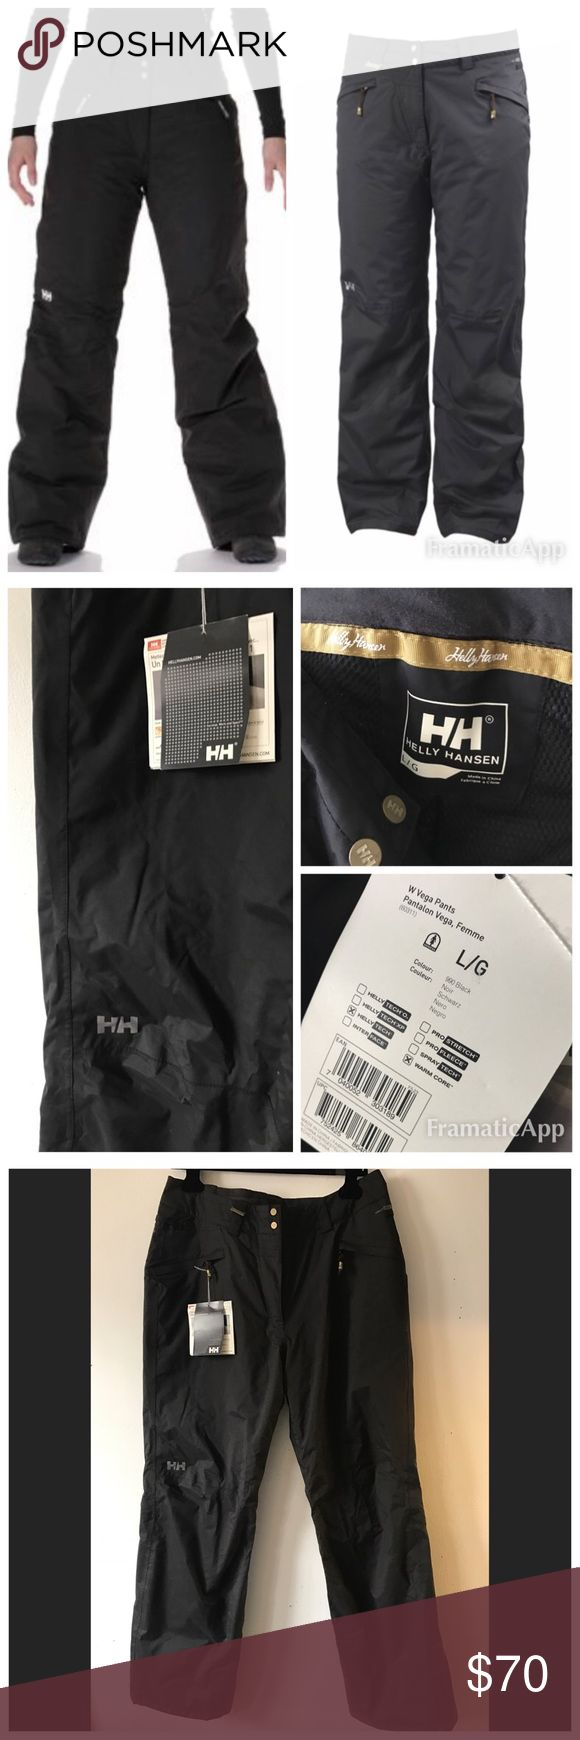 NWT Helly Hansen Vega Ski Snow Pants size L $129 NWT Helly Hansen Women's Vega Pants size L Designed for a woman's frame. features a waterproof/breathable exterior & critically-placed insulation for unparalleled warmth & cold-weather protection. the lower legs are detailed w/a reinforced hem that minimizes abrasion from ice & ski edges, while stretchy boot gaiters keep snow out Belt loops & tailored fit * Fully seam sealed * Warm Core by Primaloft 60g * Recco Advanced Rescue system…